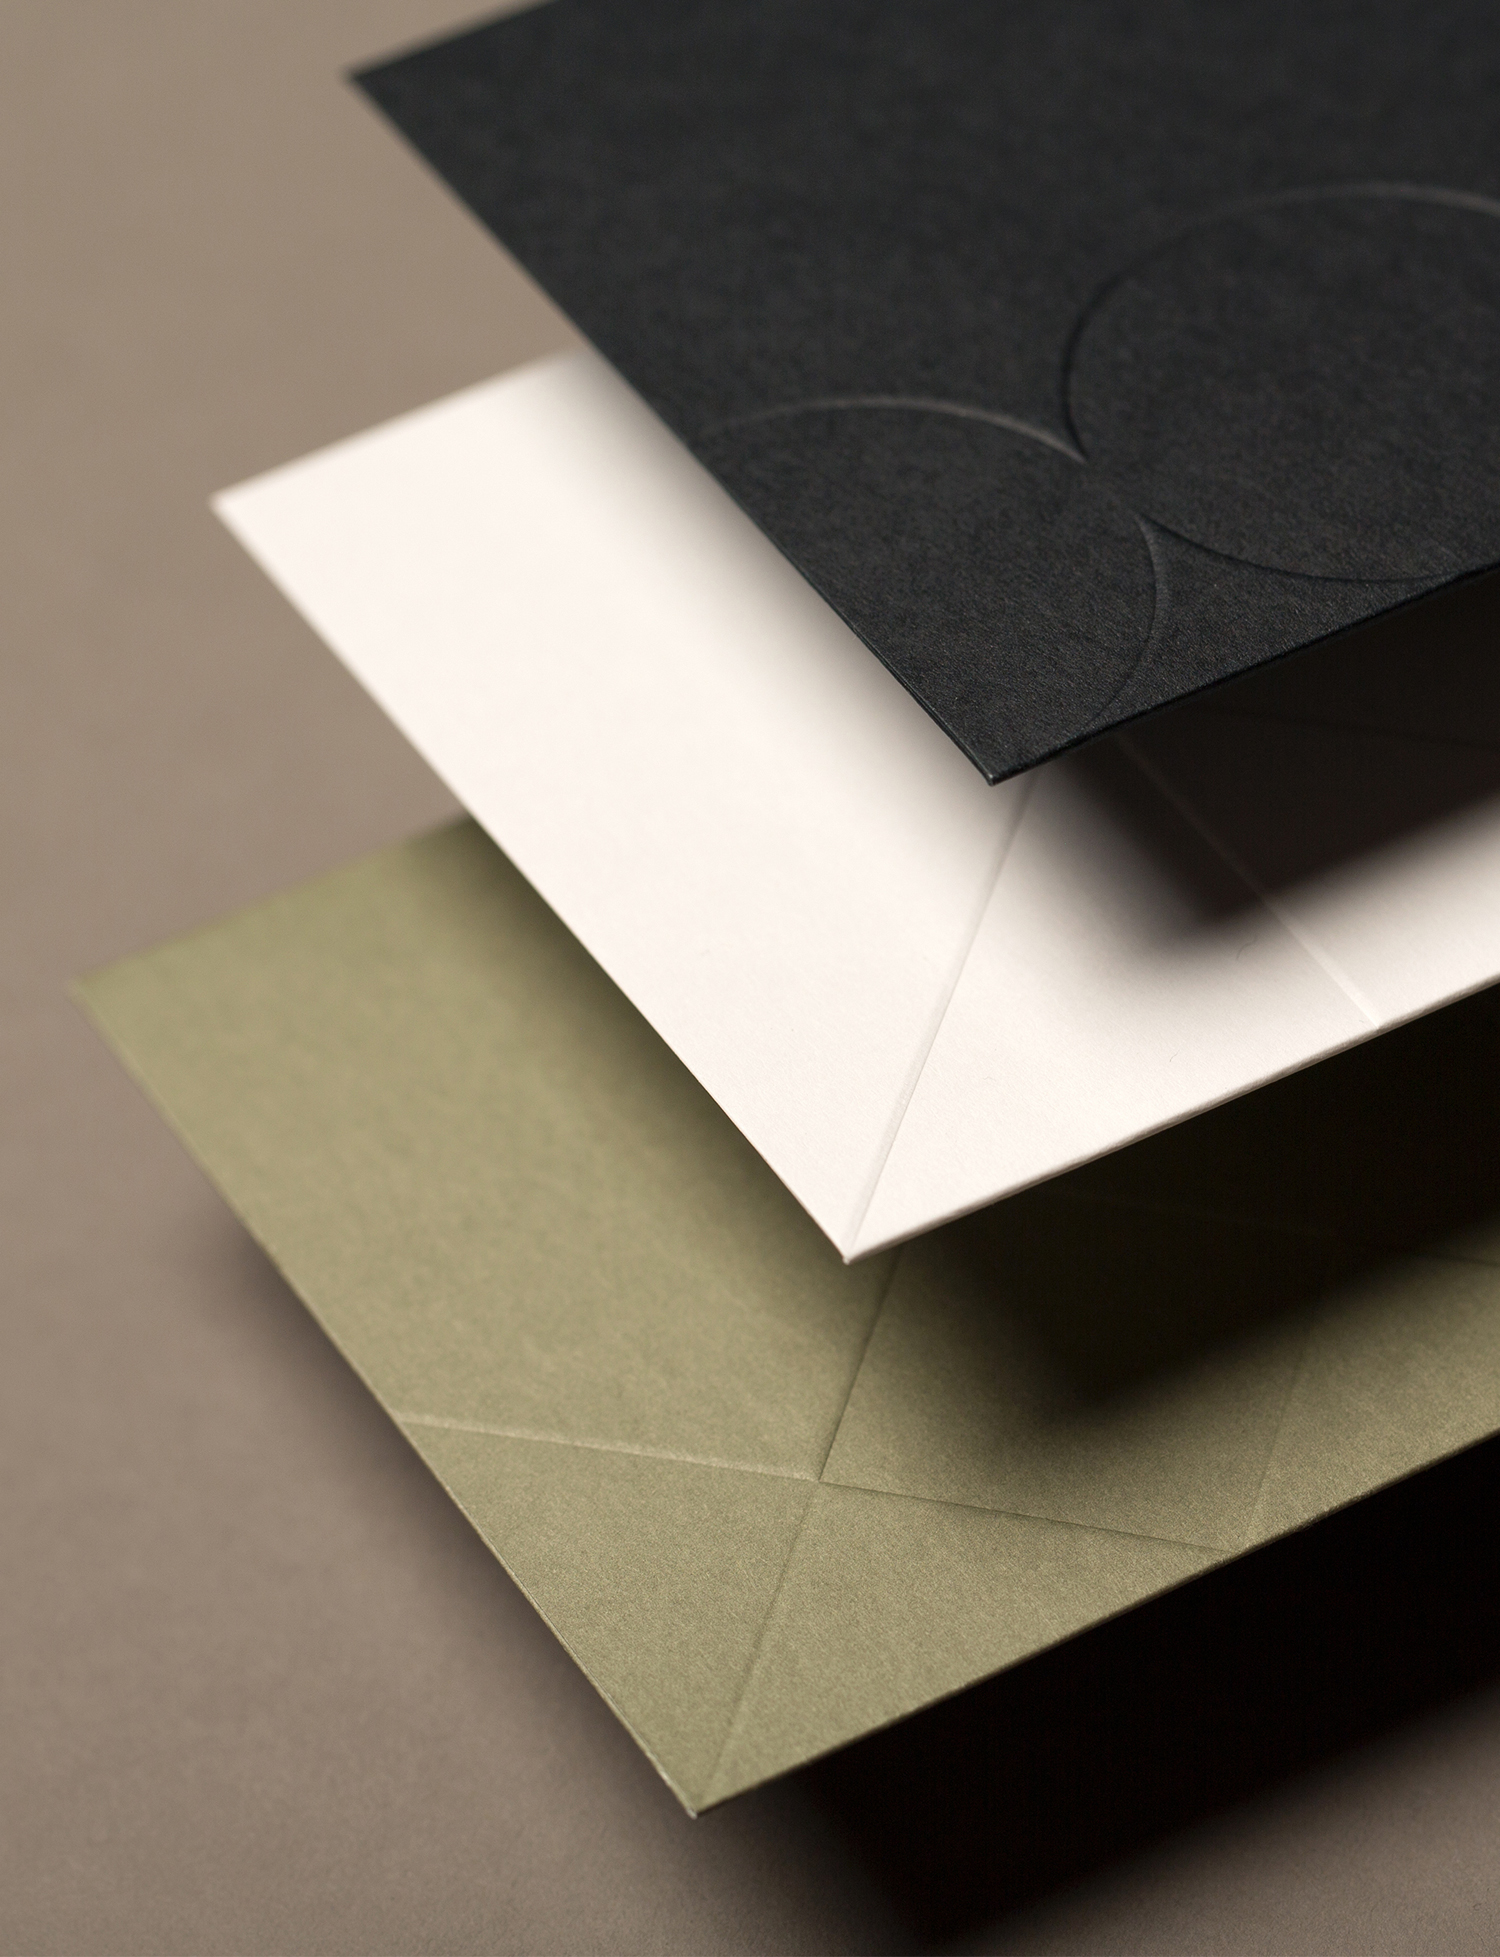 Brand identity and business cards with block foil and blind deboss detail designed by Face for Hicks, Mexico.